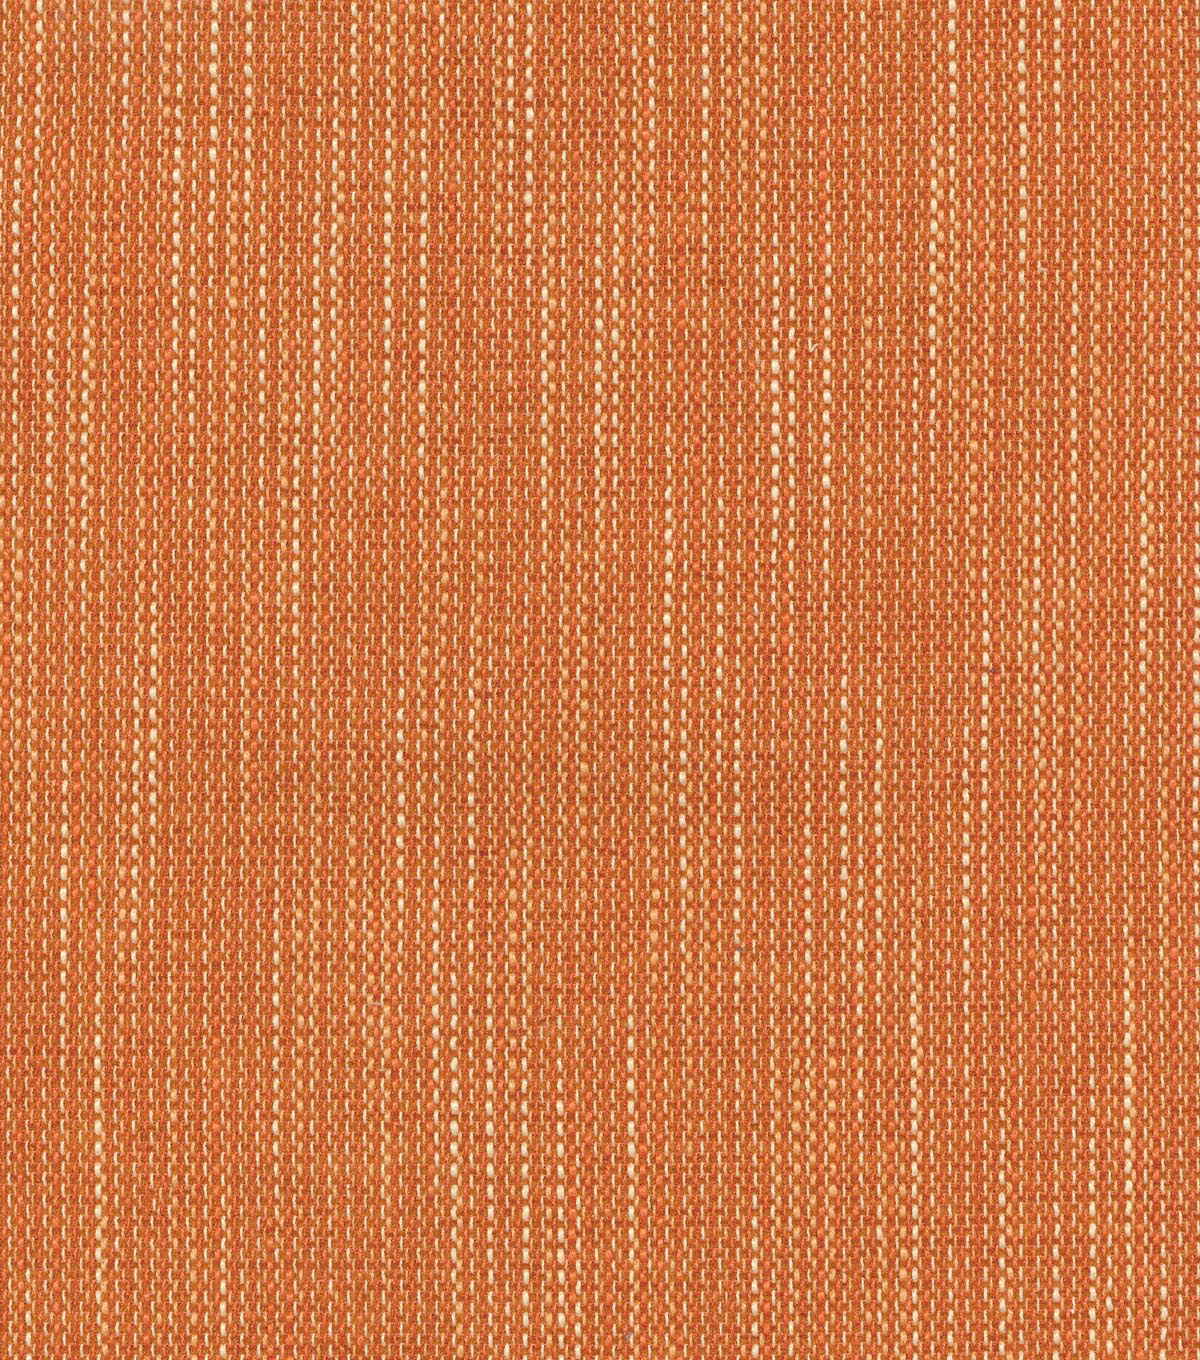 Home Decor 8\u0022x8\u0022 Swatch Fabric-Waverly Varick  Persimmon